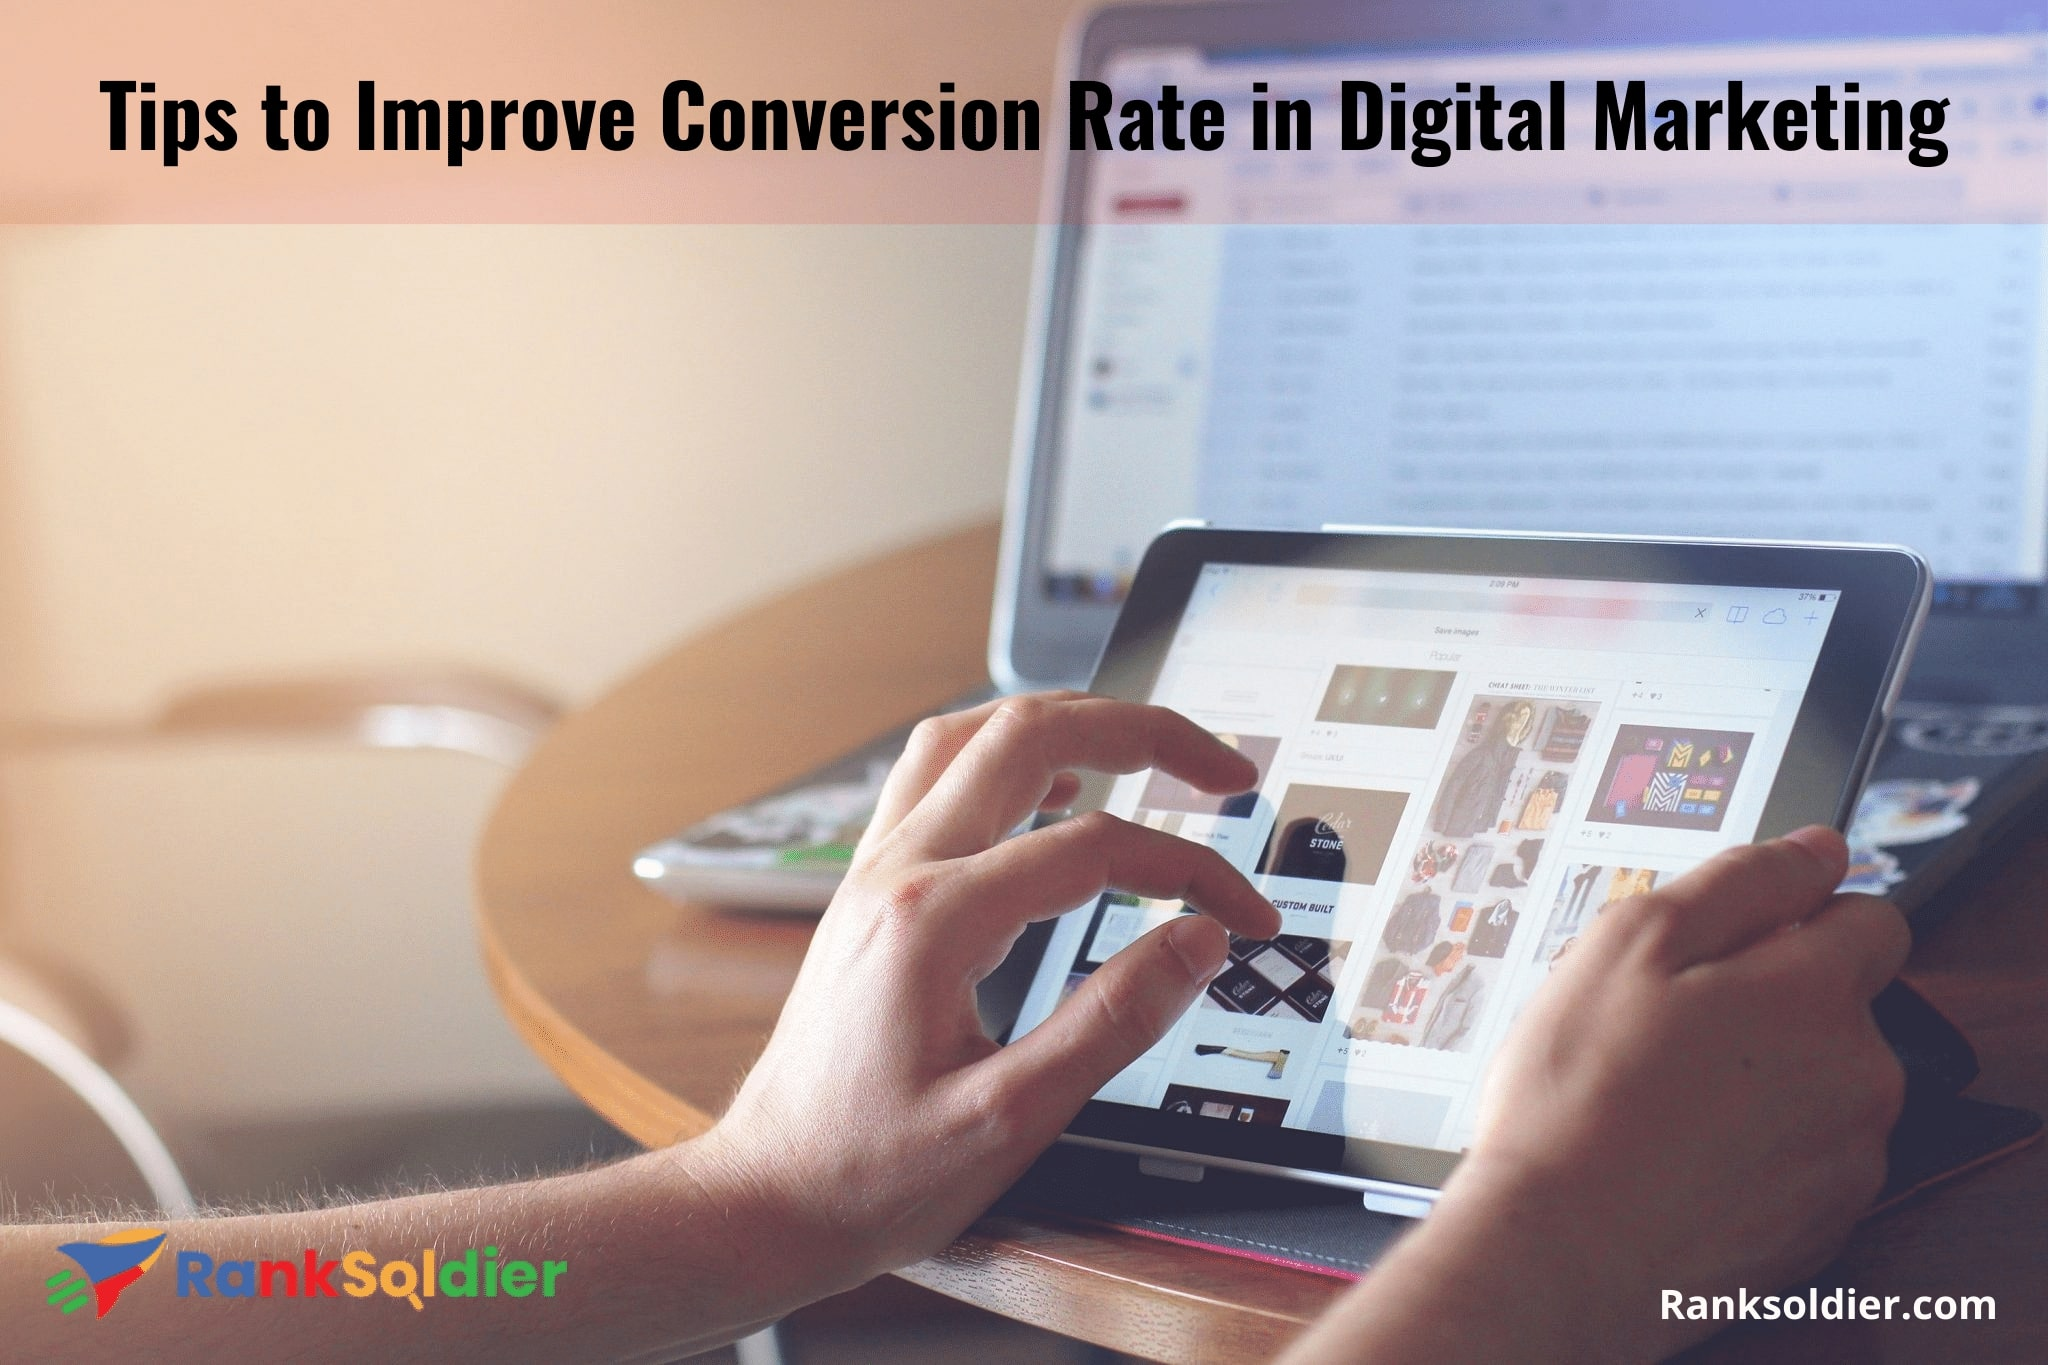 Tips to Improve Conversion Rate in Digital Marketing